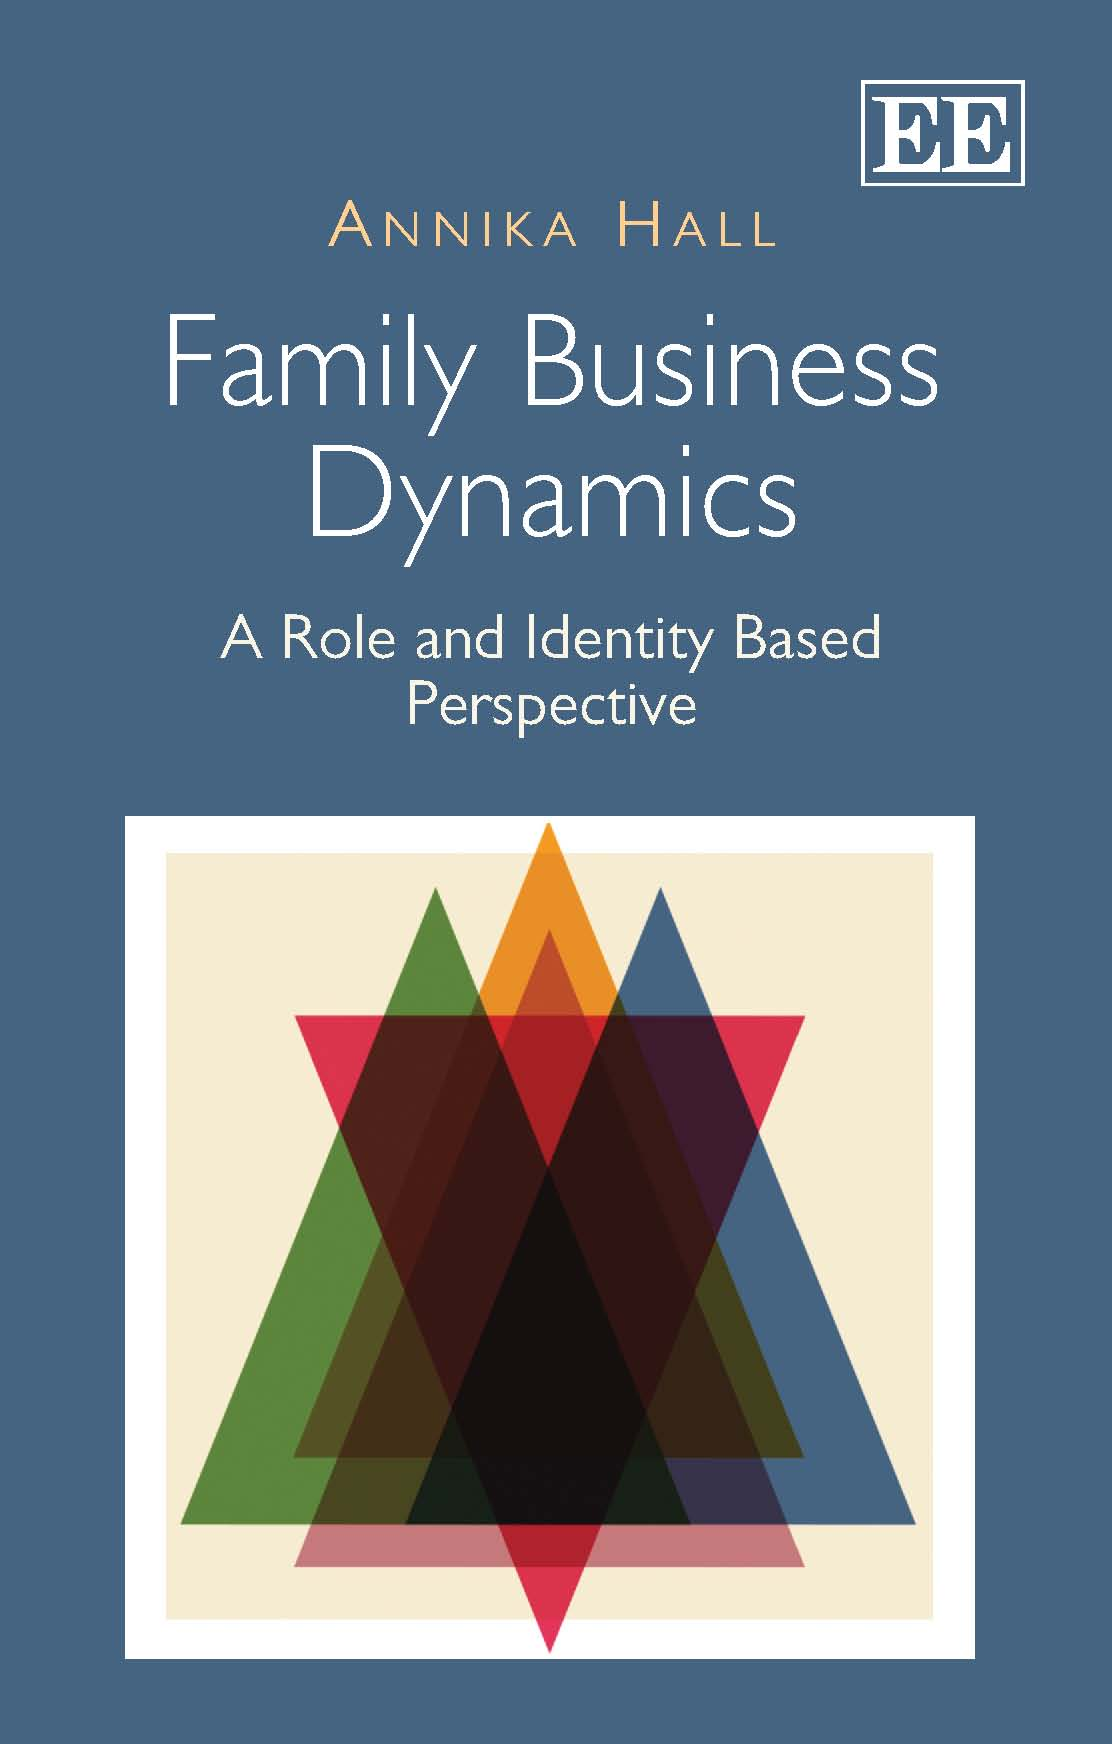 Download Ebook Family Business Dynamics by Annika Hall Pdf